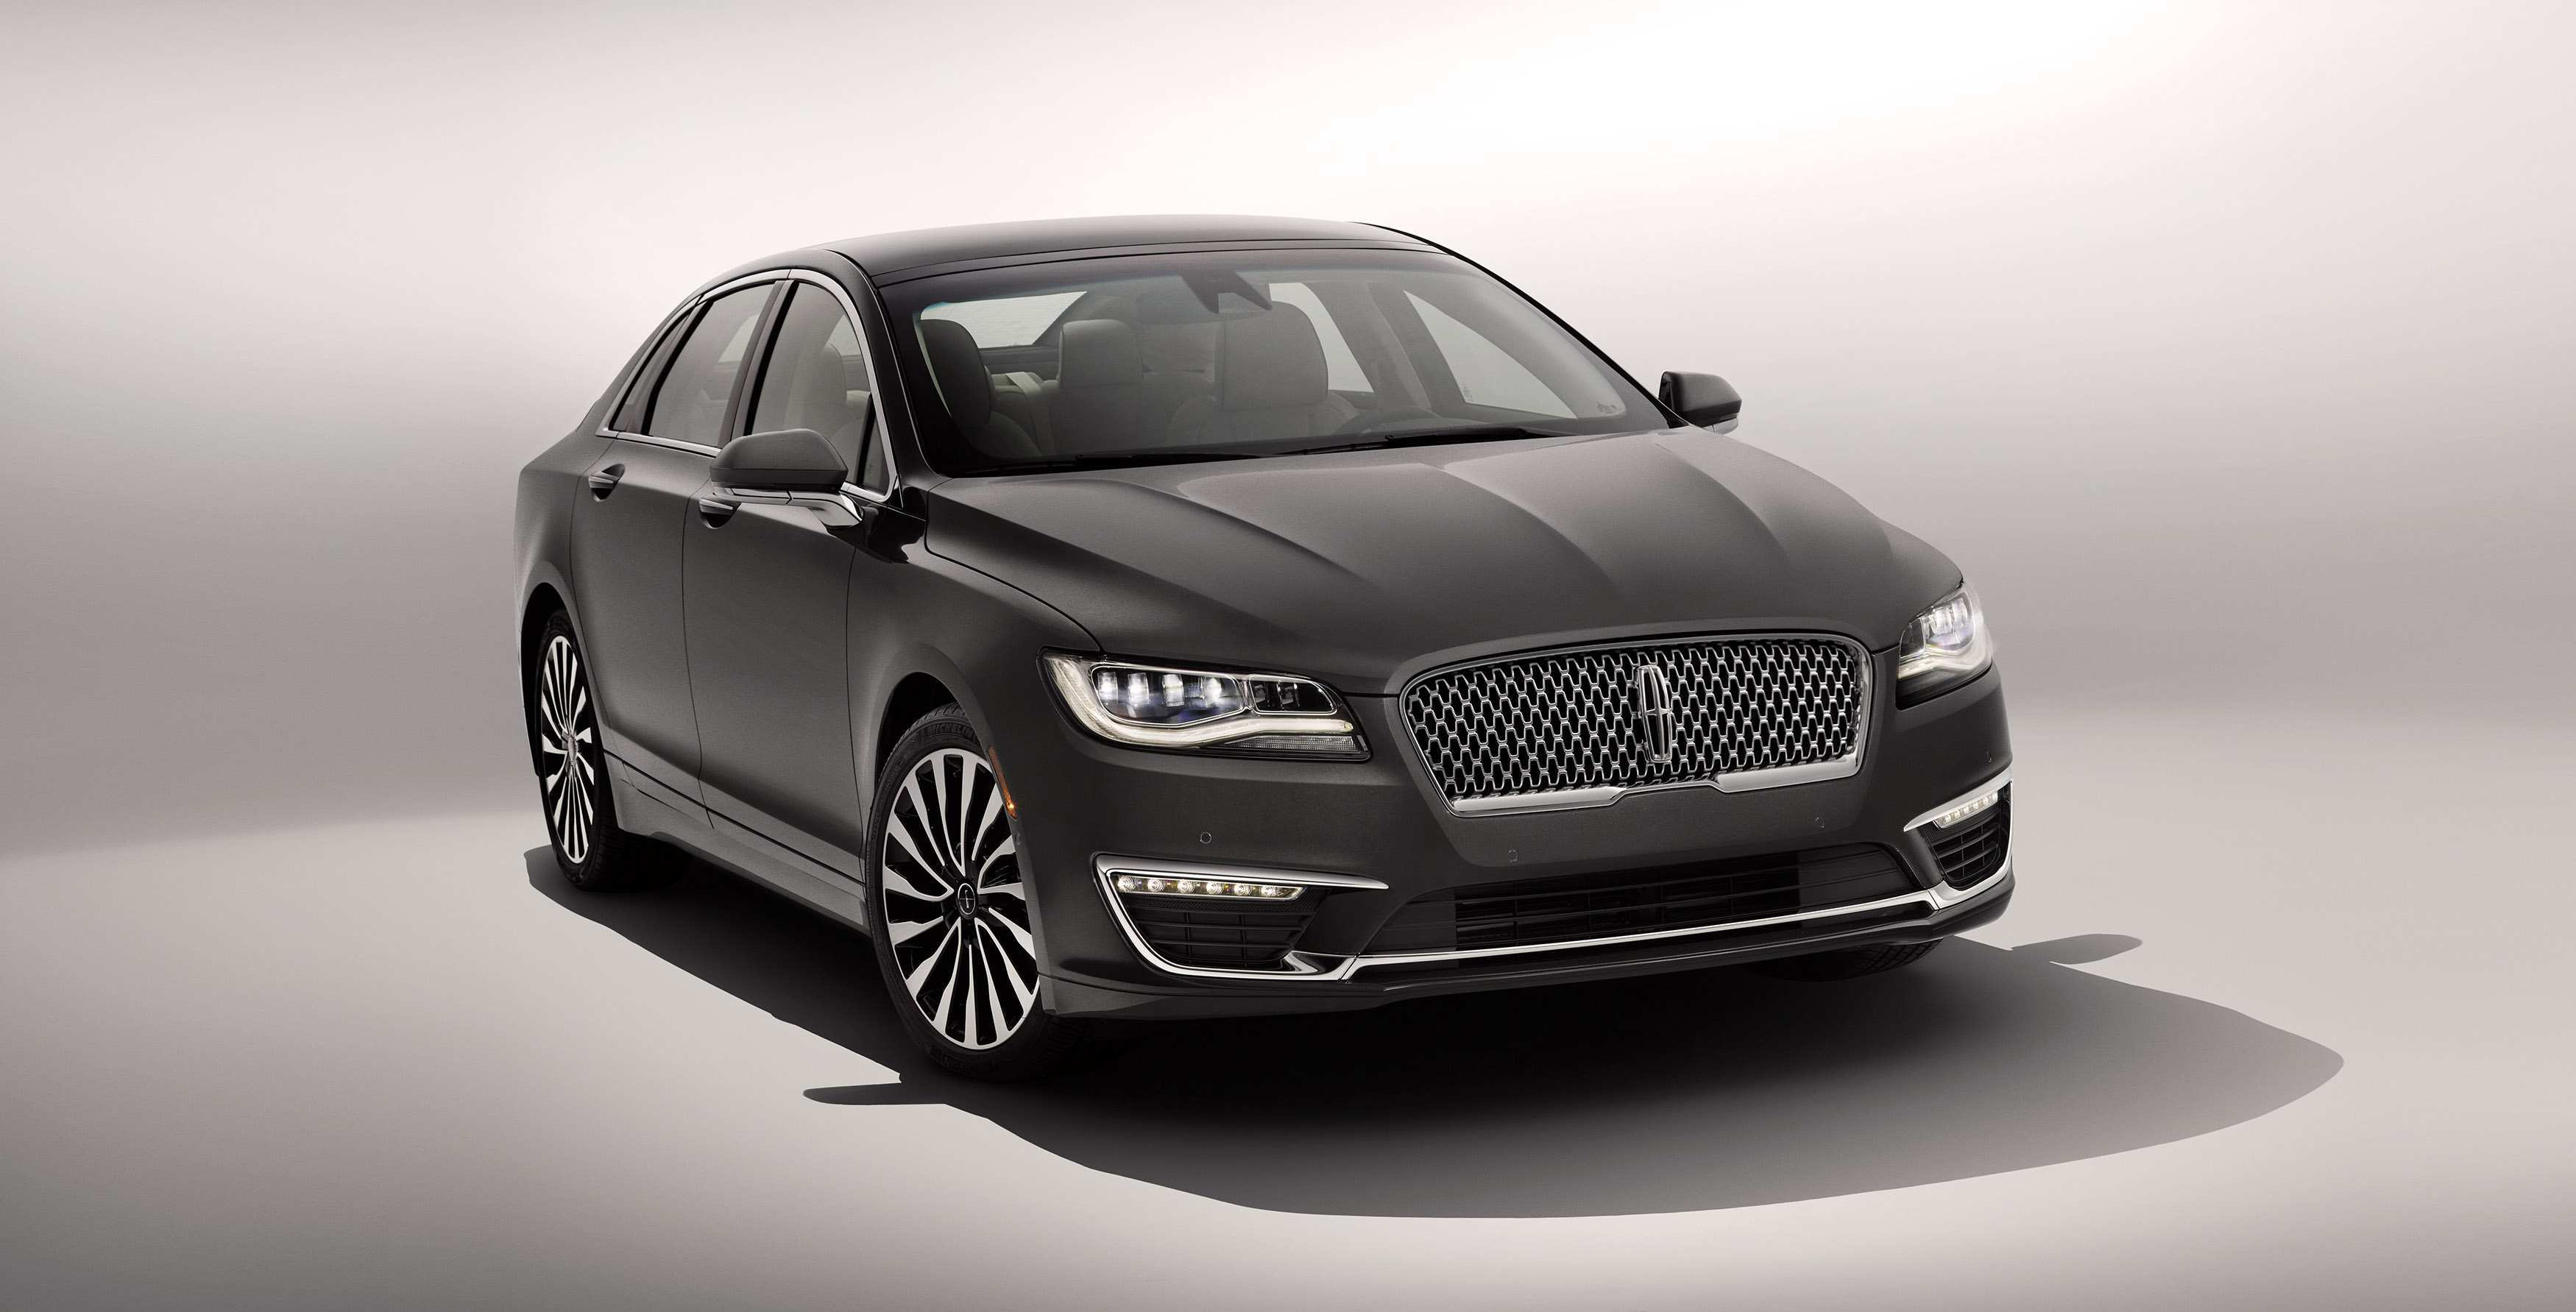 82 Concept of 2020 Lincoln MKS Spy Photos New Concept with 2020 Lincoln MKS Spy Photos